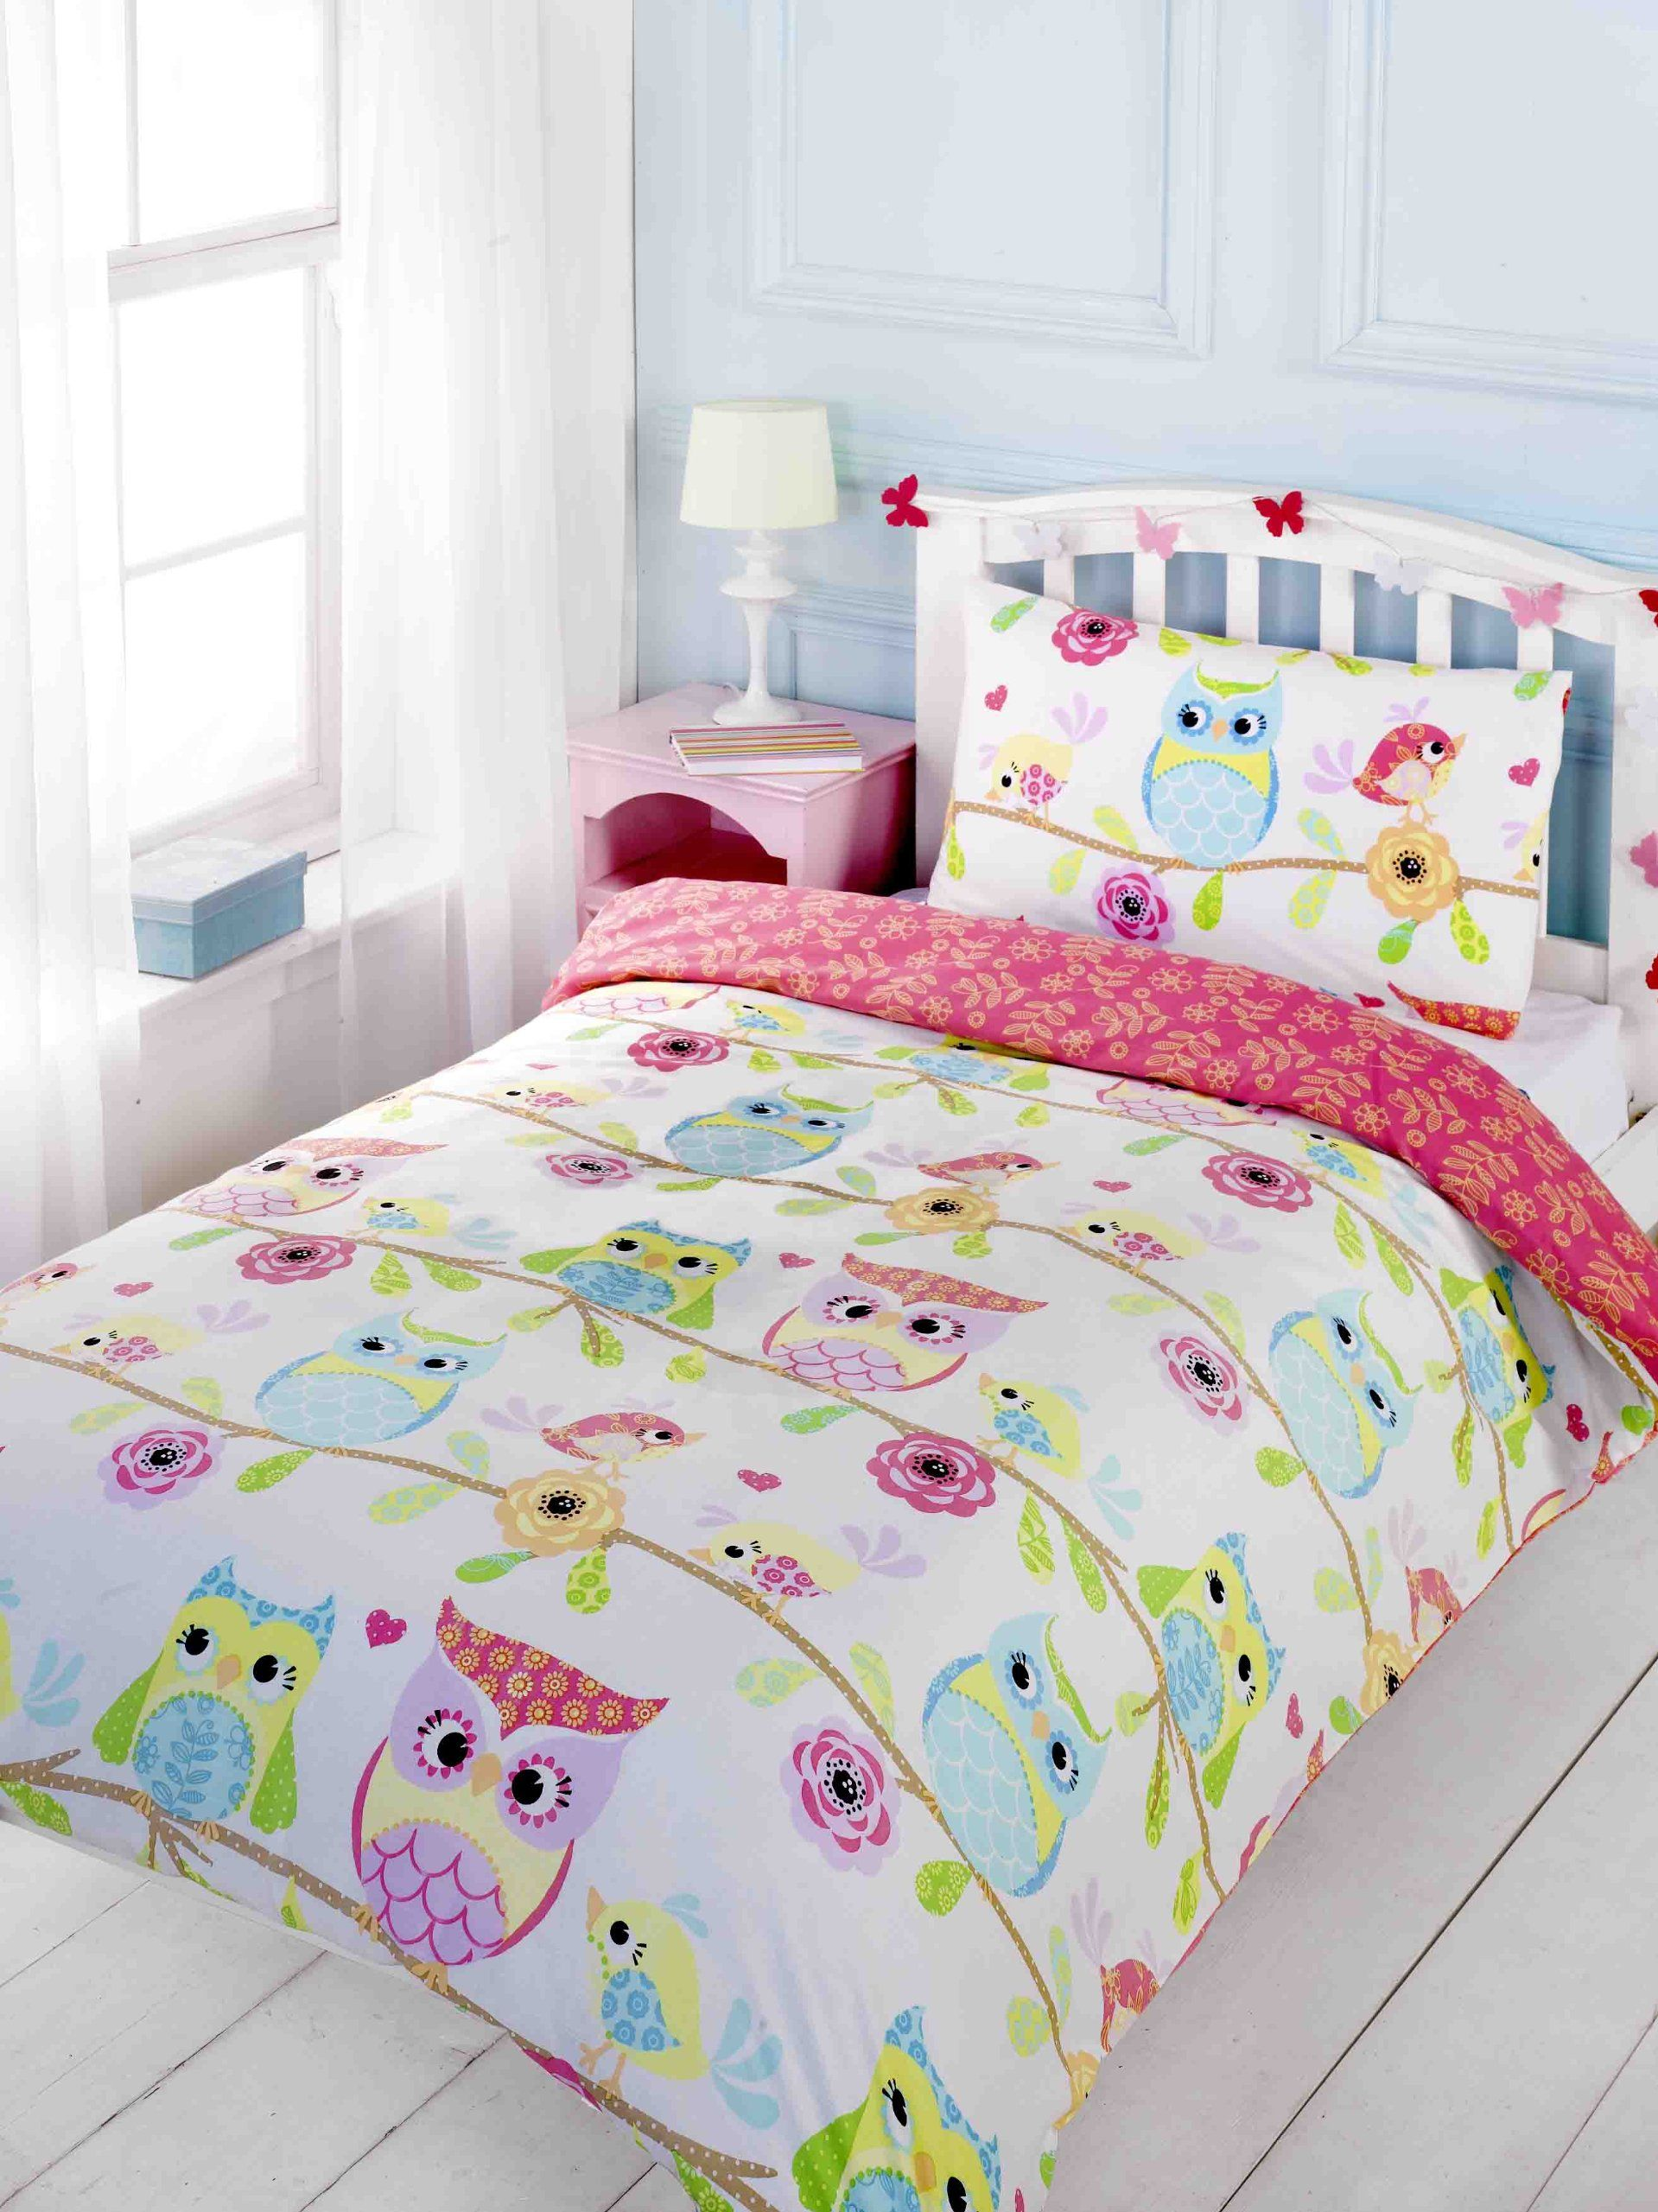 Funny bed sheets - Childrens Girls Owl Friends Birds Flowers Duvet Cover Quilt Bedding Set